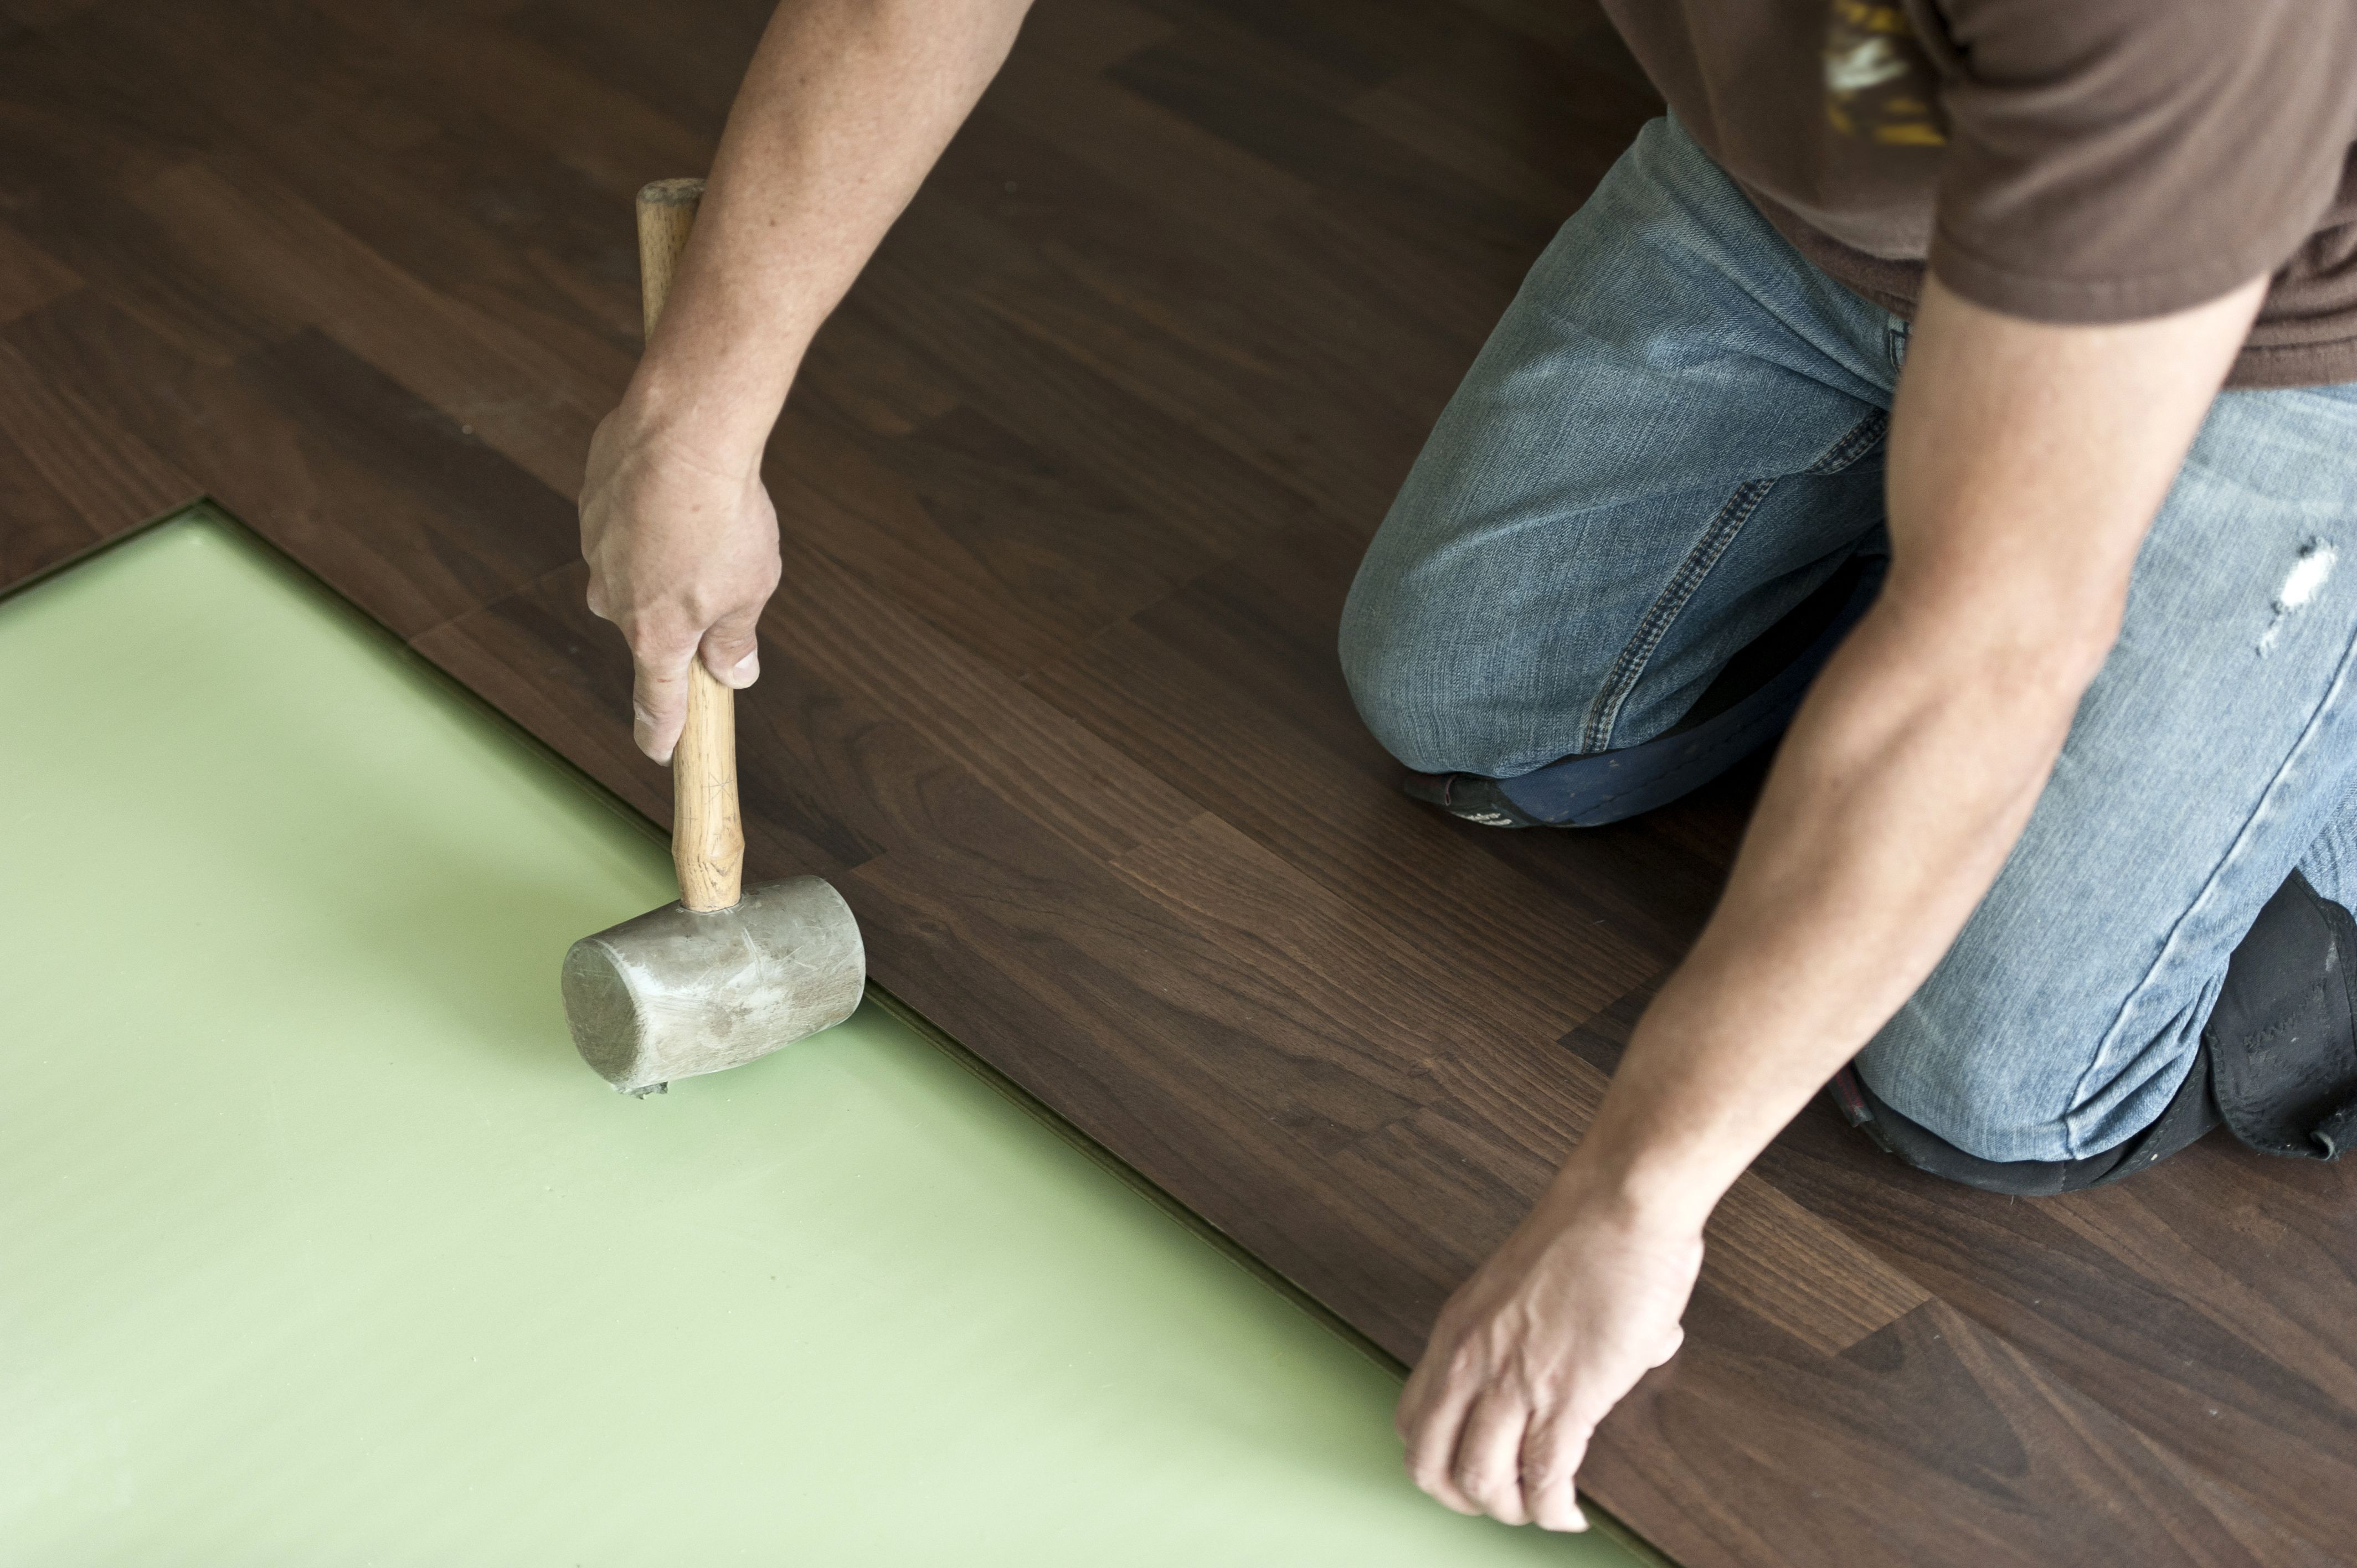 installing 3 4 hardwood flooring over concrete of can a foam pad be use under solid hardwood flooring inside installing hardwood floor 155149312 57e967d45f9b586c35ade84a